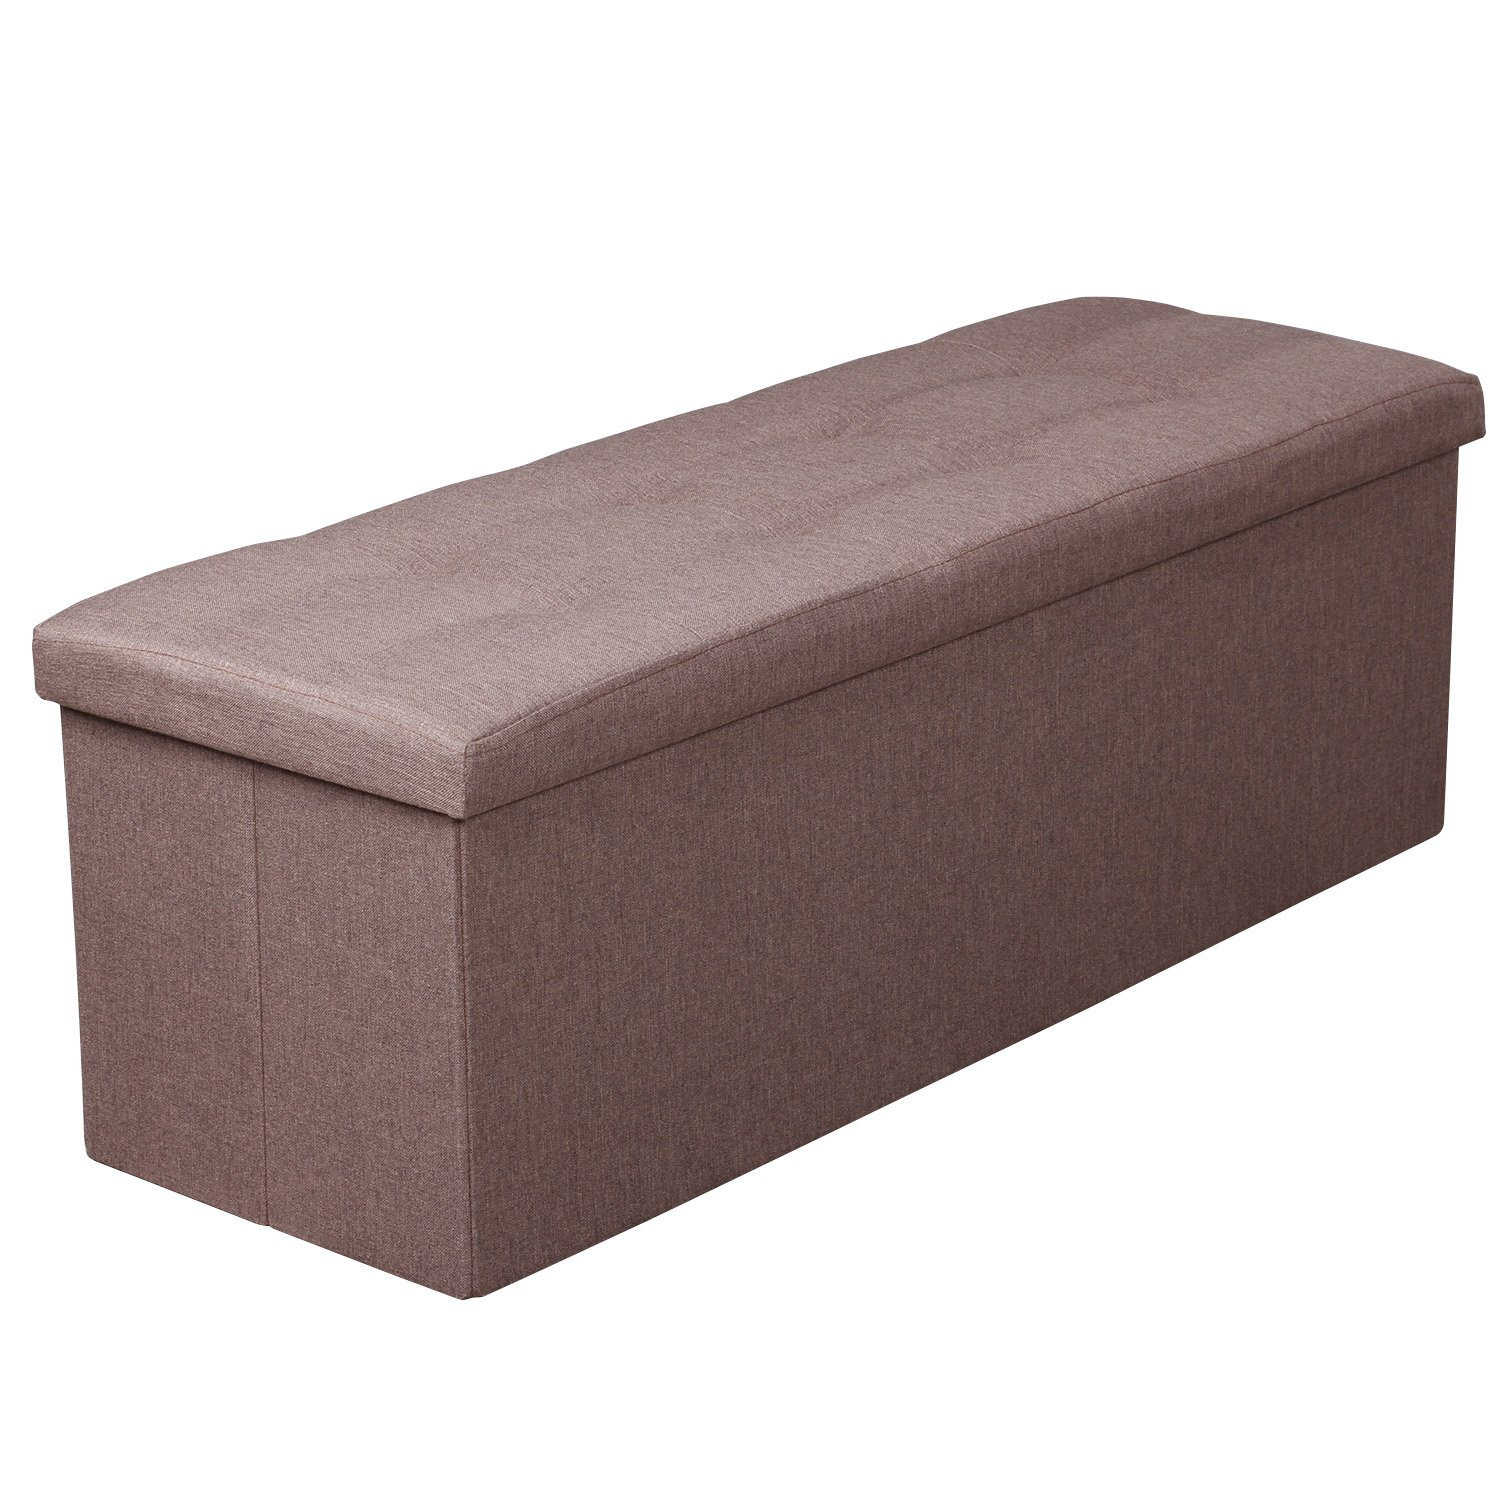 Felimoda Linen Fabric Folding Storage Ottoman Box Seat Foot Stool with Cushion Brown 110 x38 x38 cm